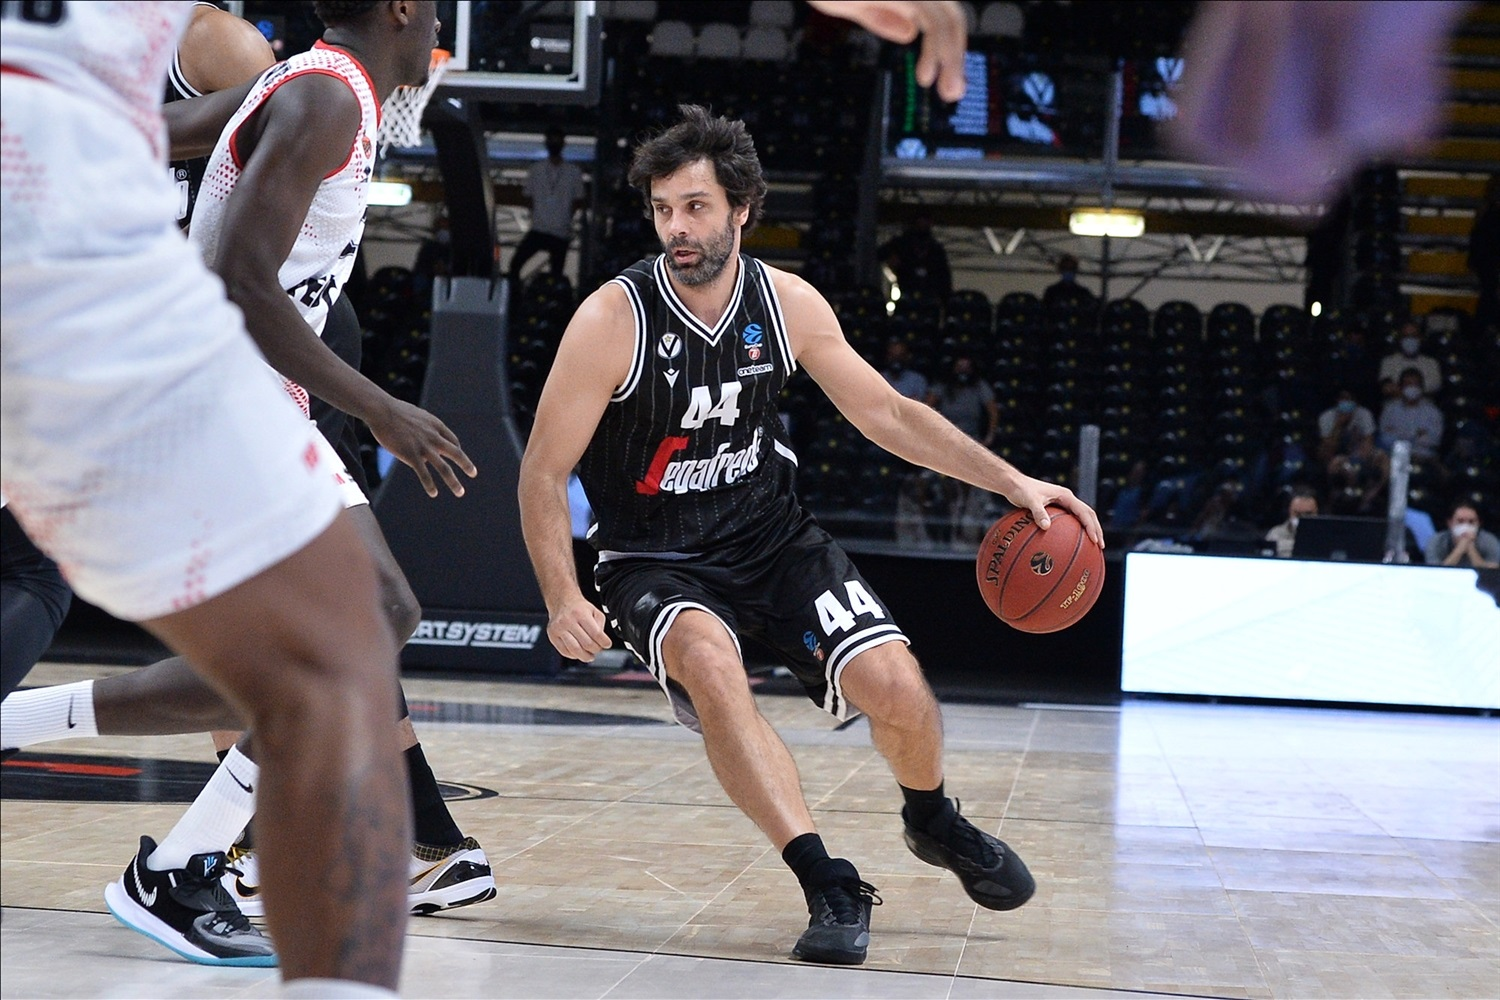 Eurocup basketball betting tips what does plus or minus mean in betting